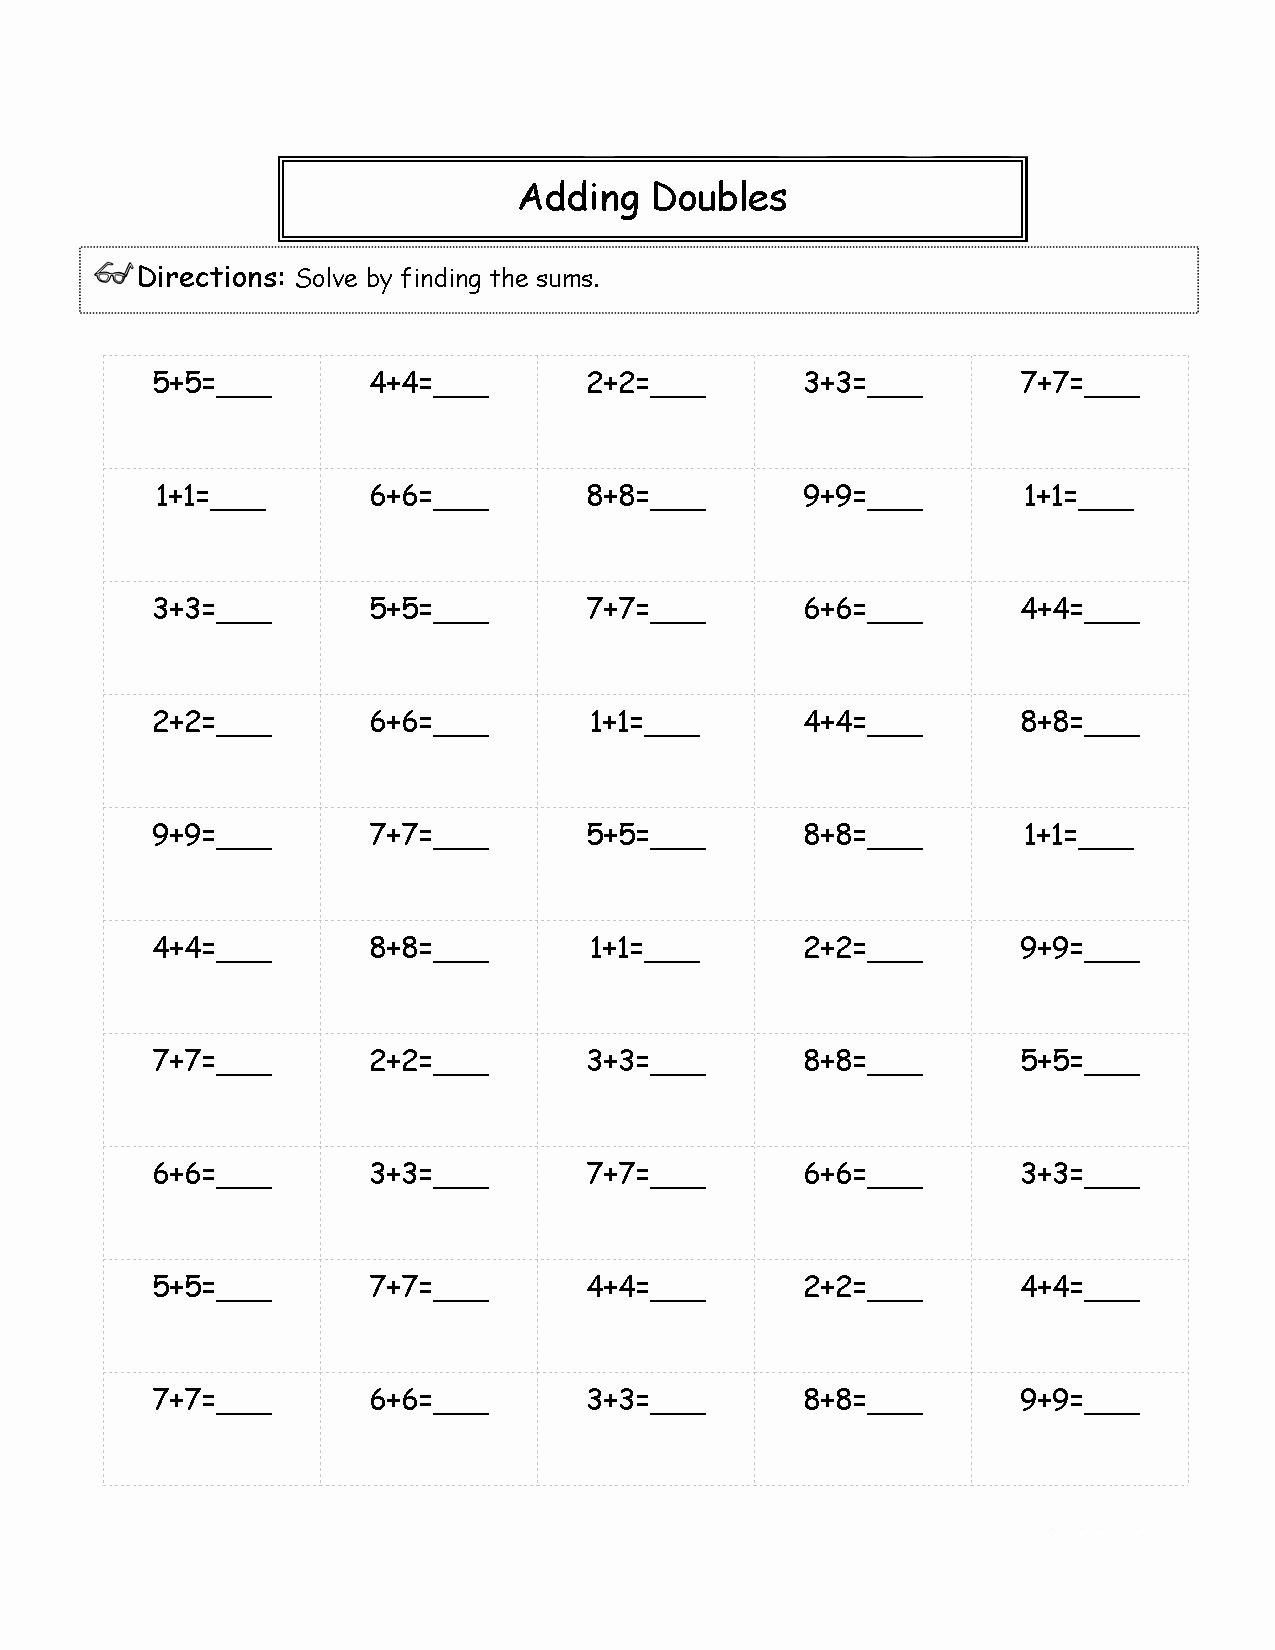 2nd Grade Geometry Worksheet Beautiful 2nd Grade Math Worksheets Best Coloring Pages for Kids